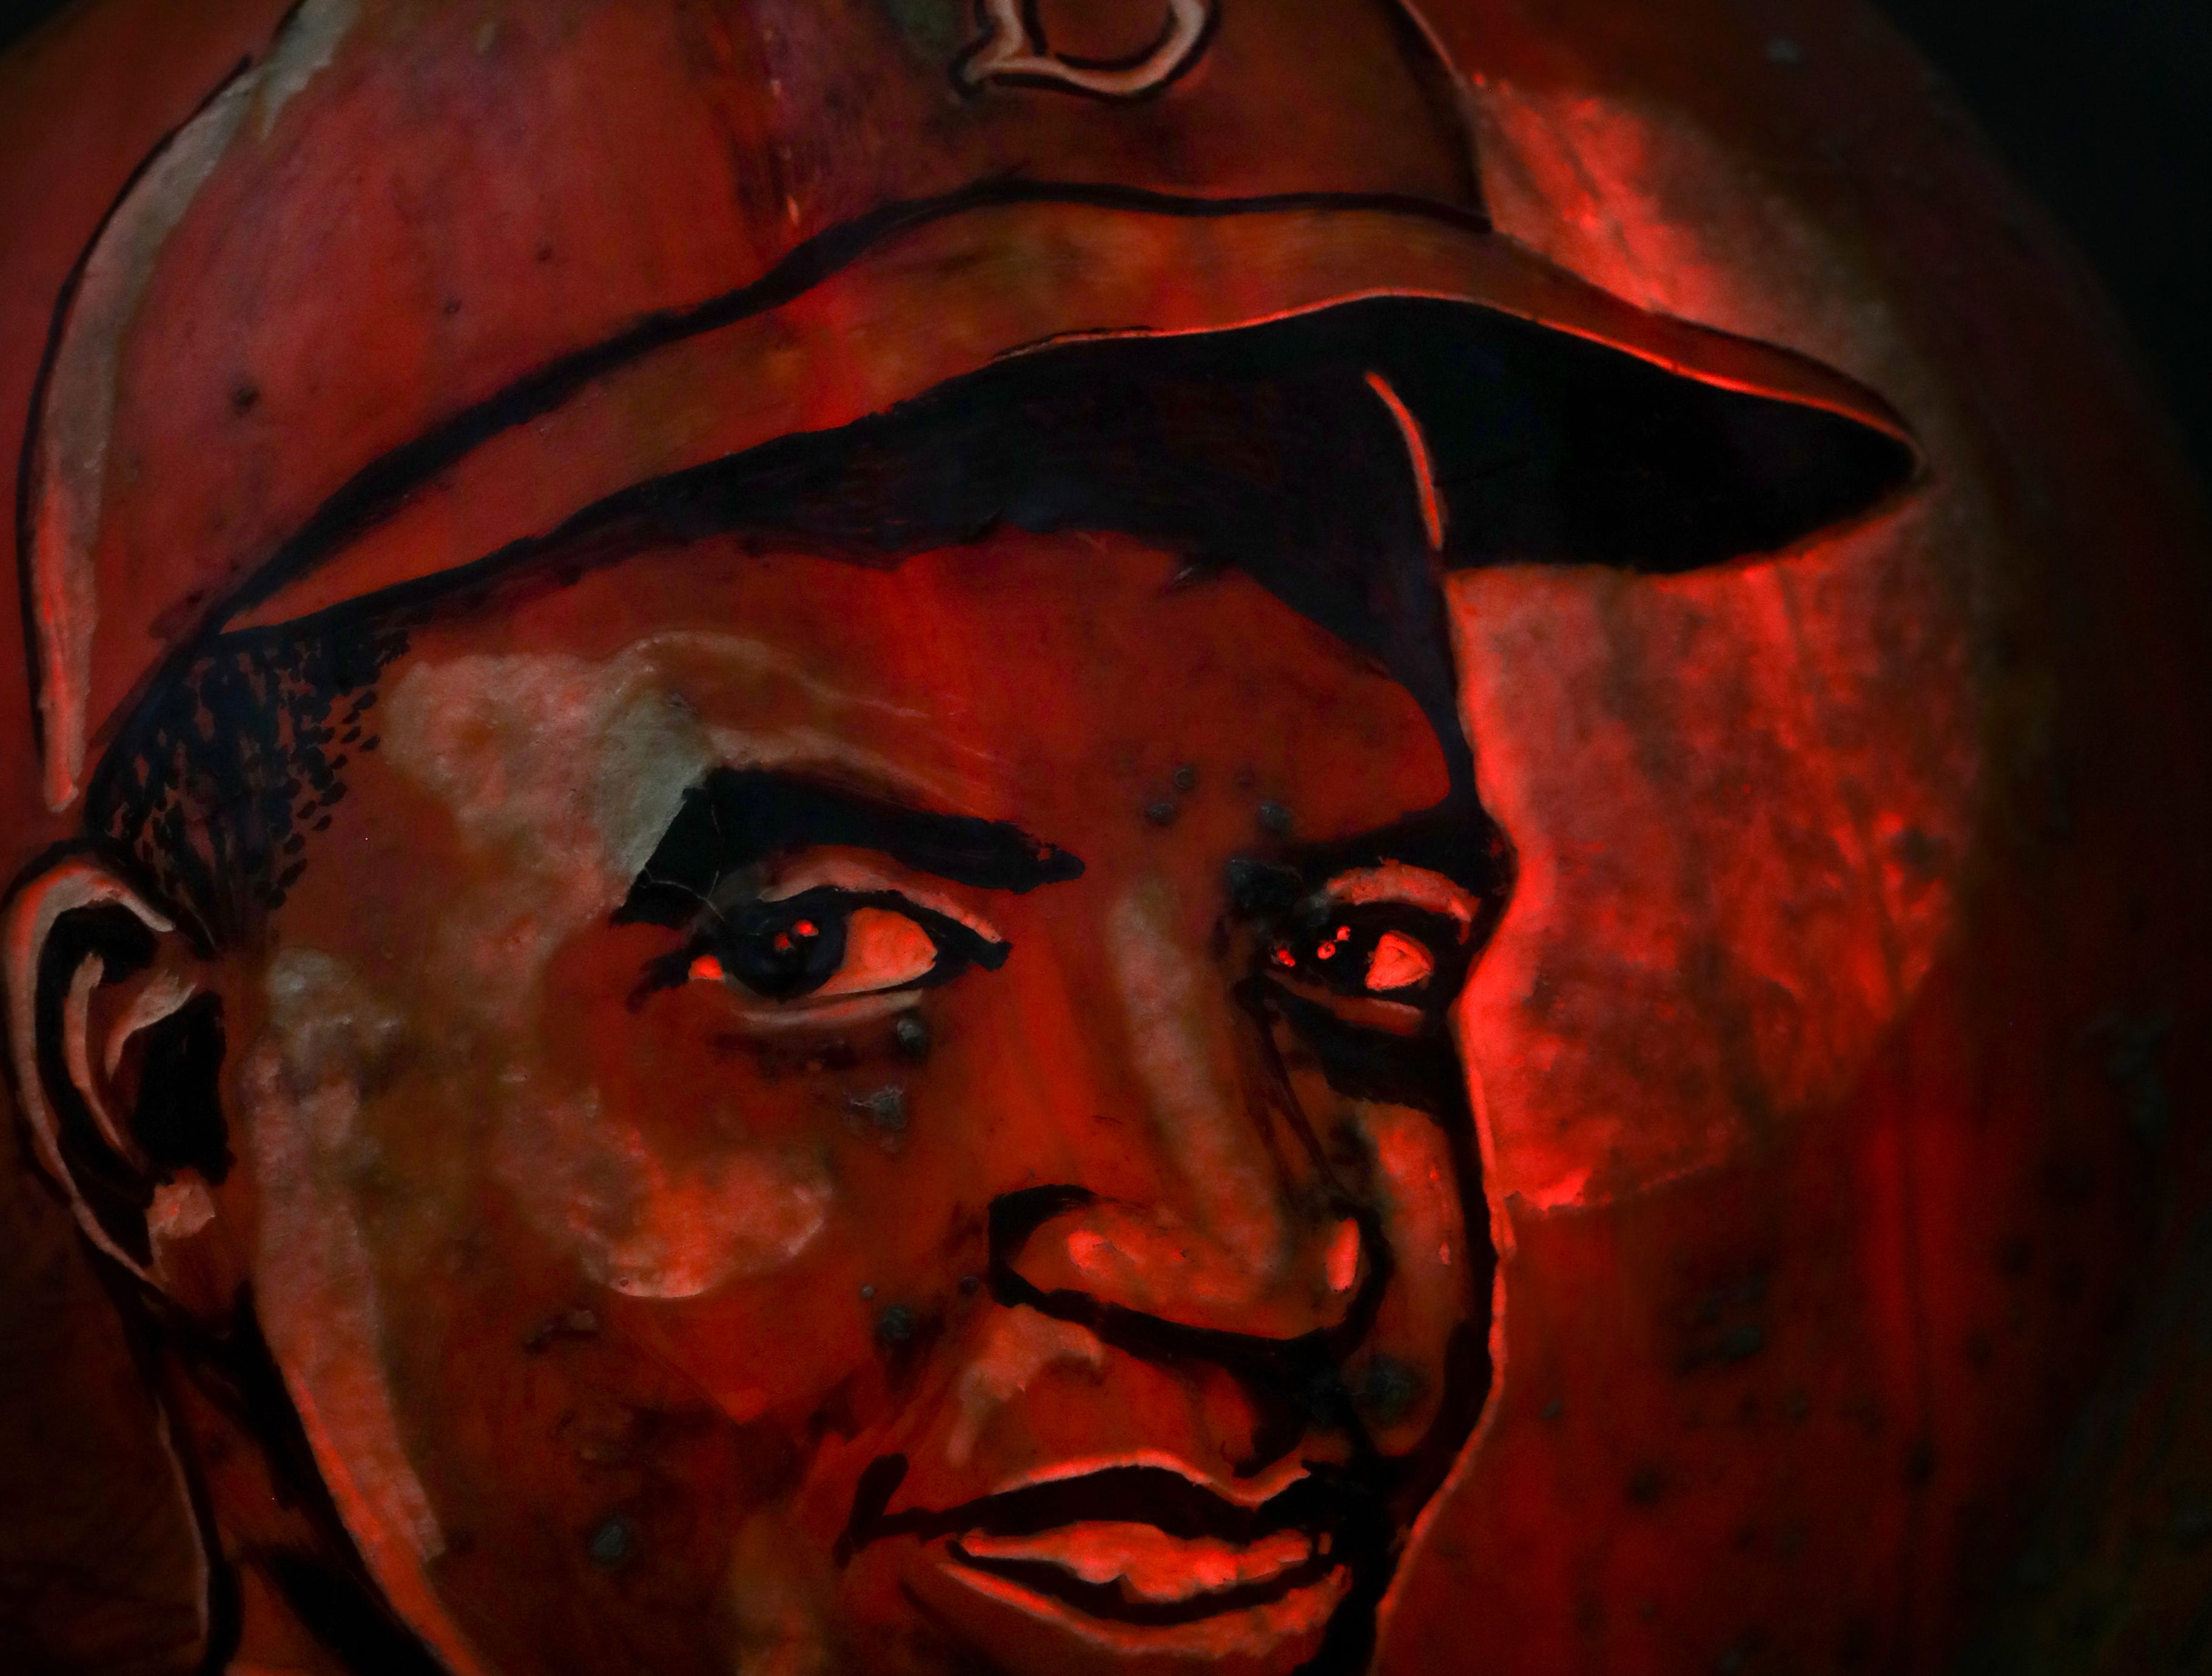 Jackie Robinson appears on a pumpkin at this year's Jack O' Lantern Spectacular. Oct. 9, 2018